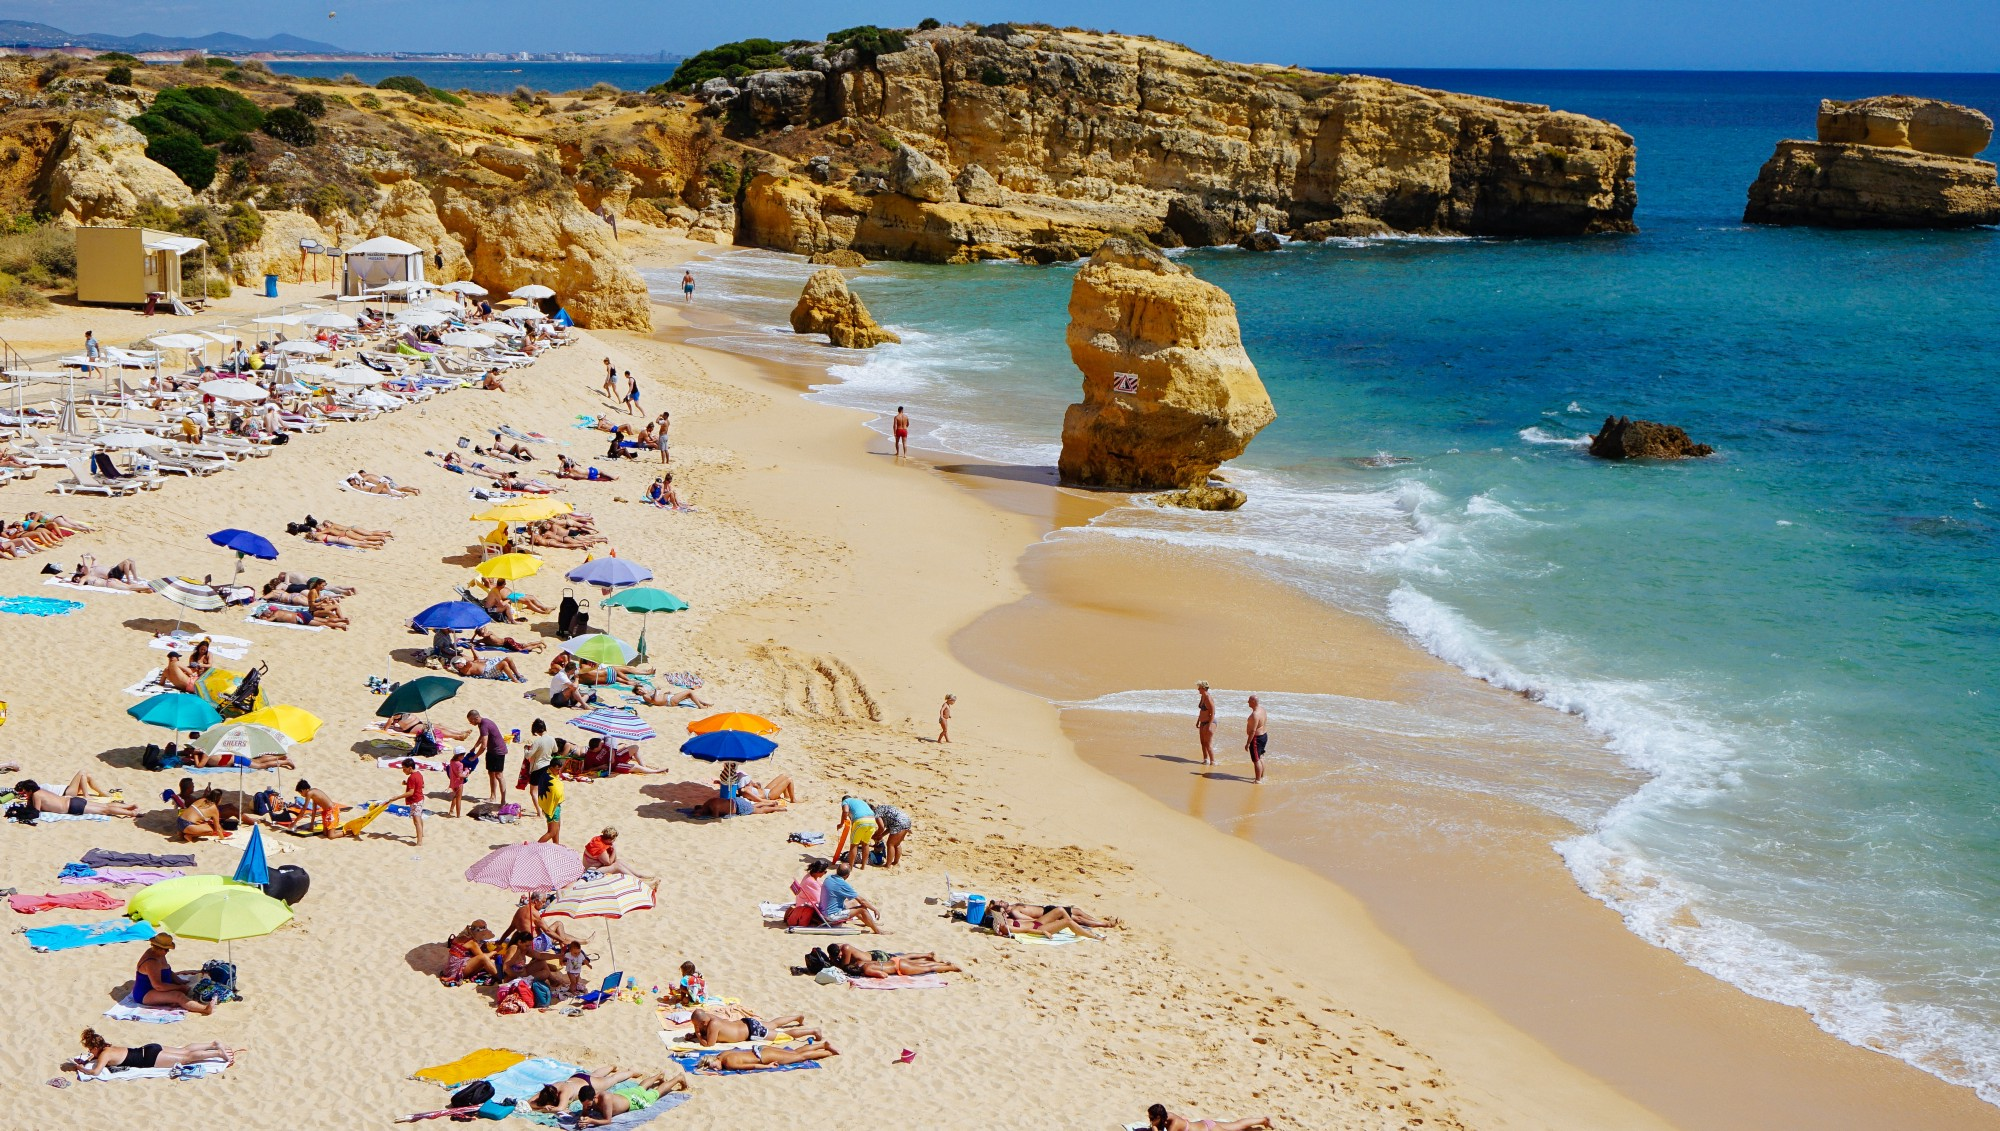 Picture of a beach (Portugal) with people and umbrellas.